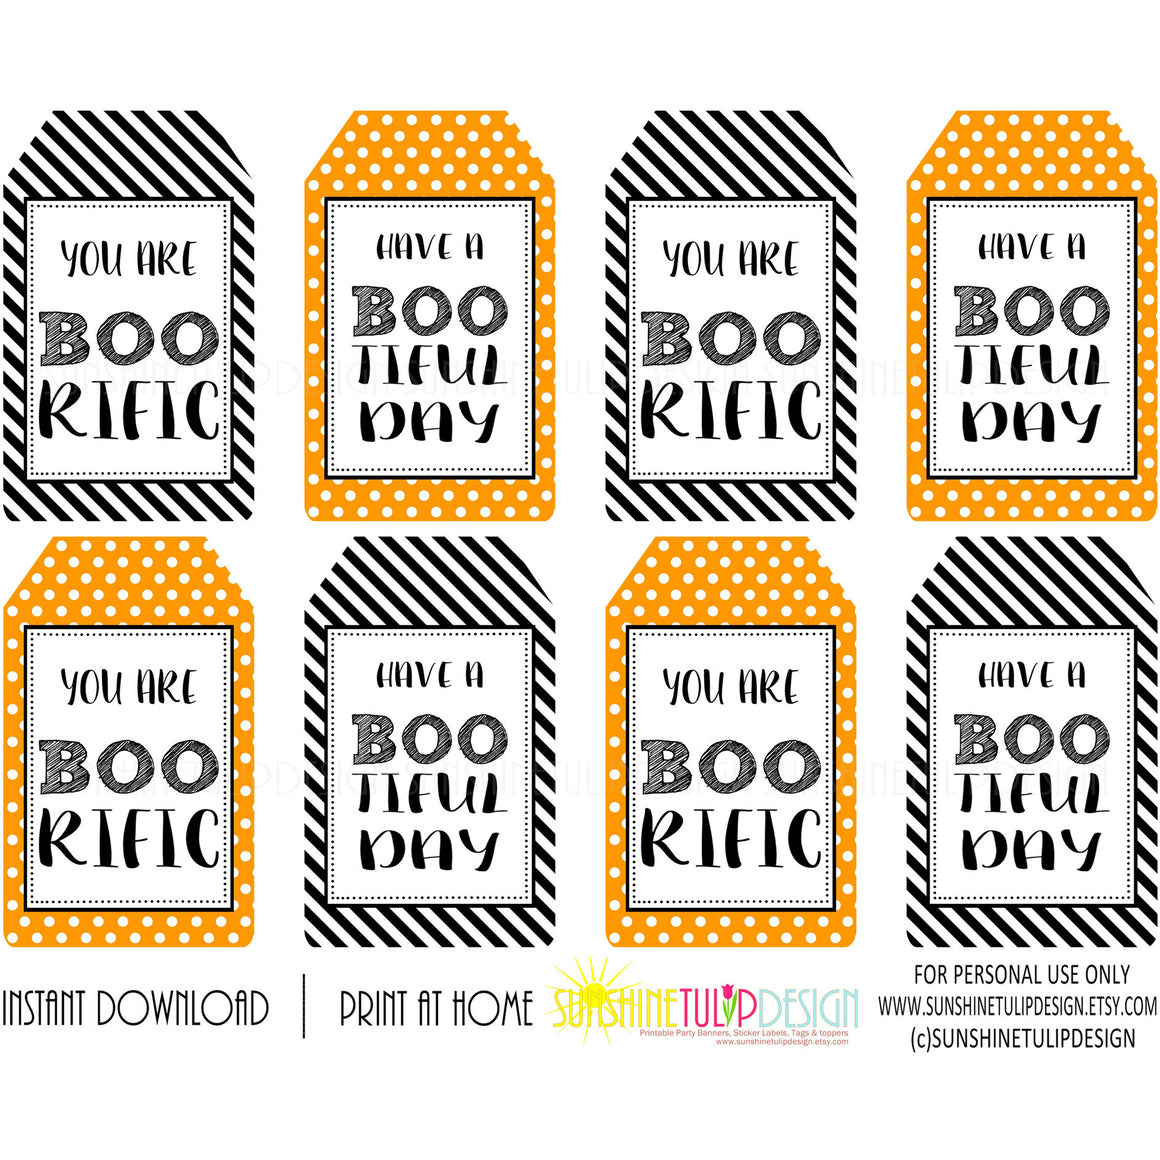 picture relating to Printable Halloween Pic called Printable Halloween Reward Tags, Halloween BOOrific BOOtiful Working day Desire Reward Tags as a result of Sunshinetulipdesign